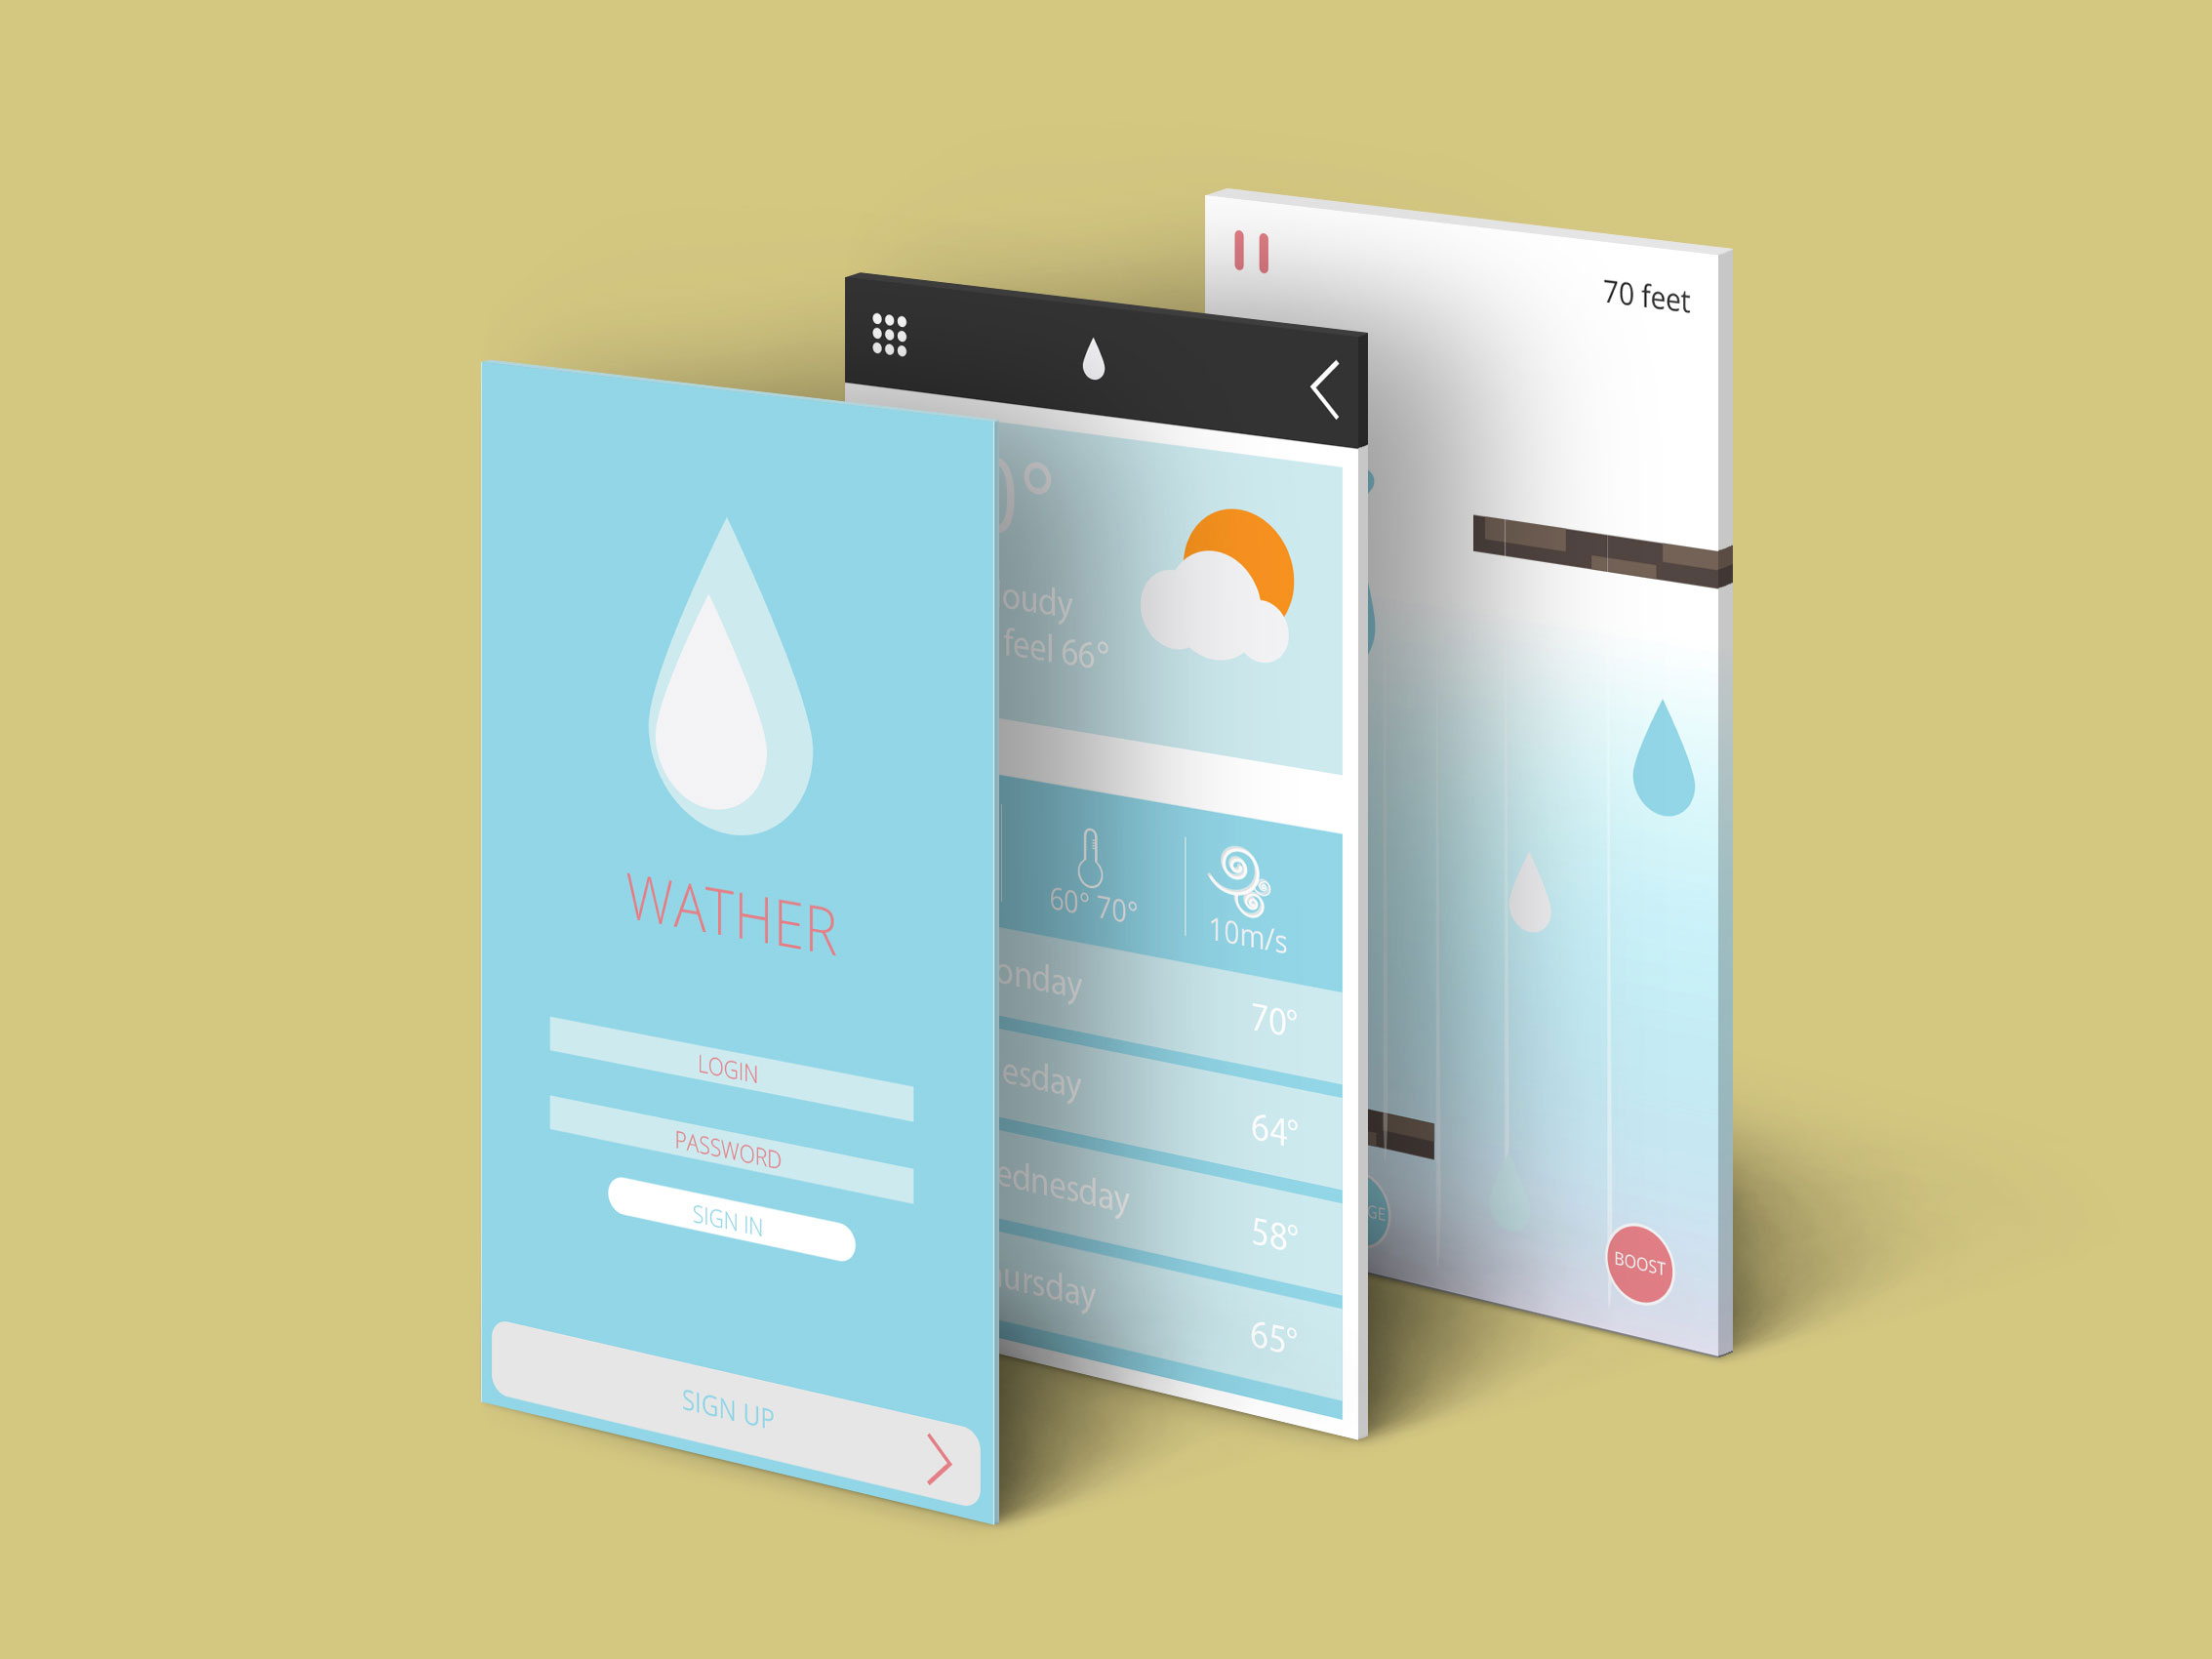 Hector Cruet Wather App Graphic UI